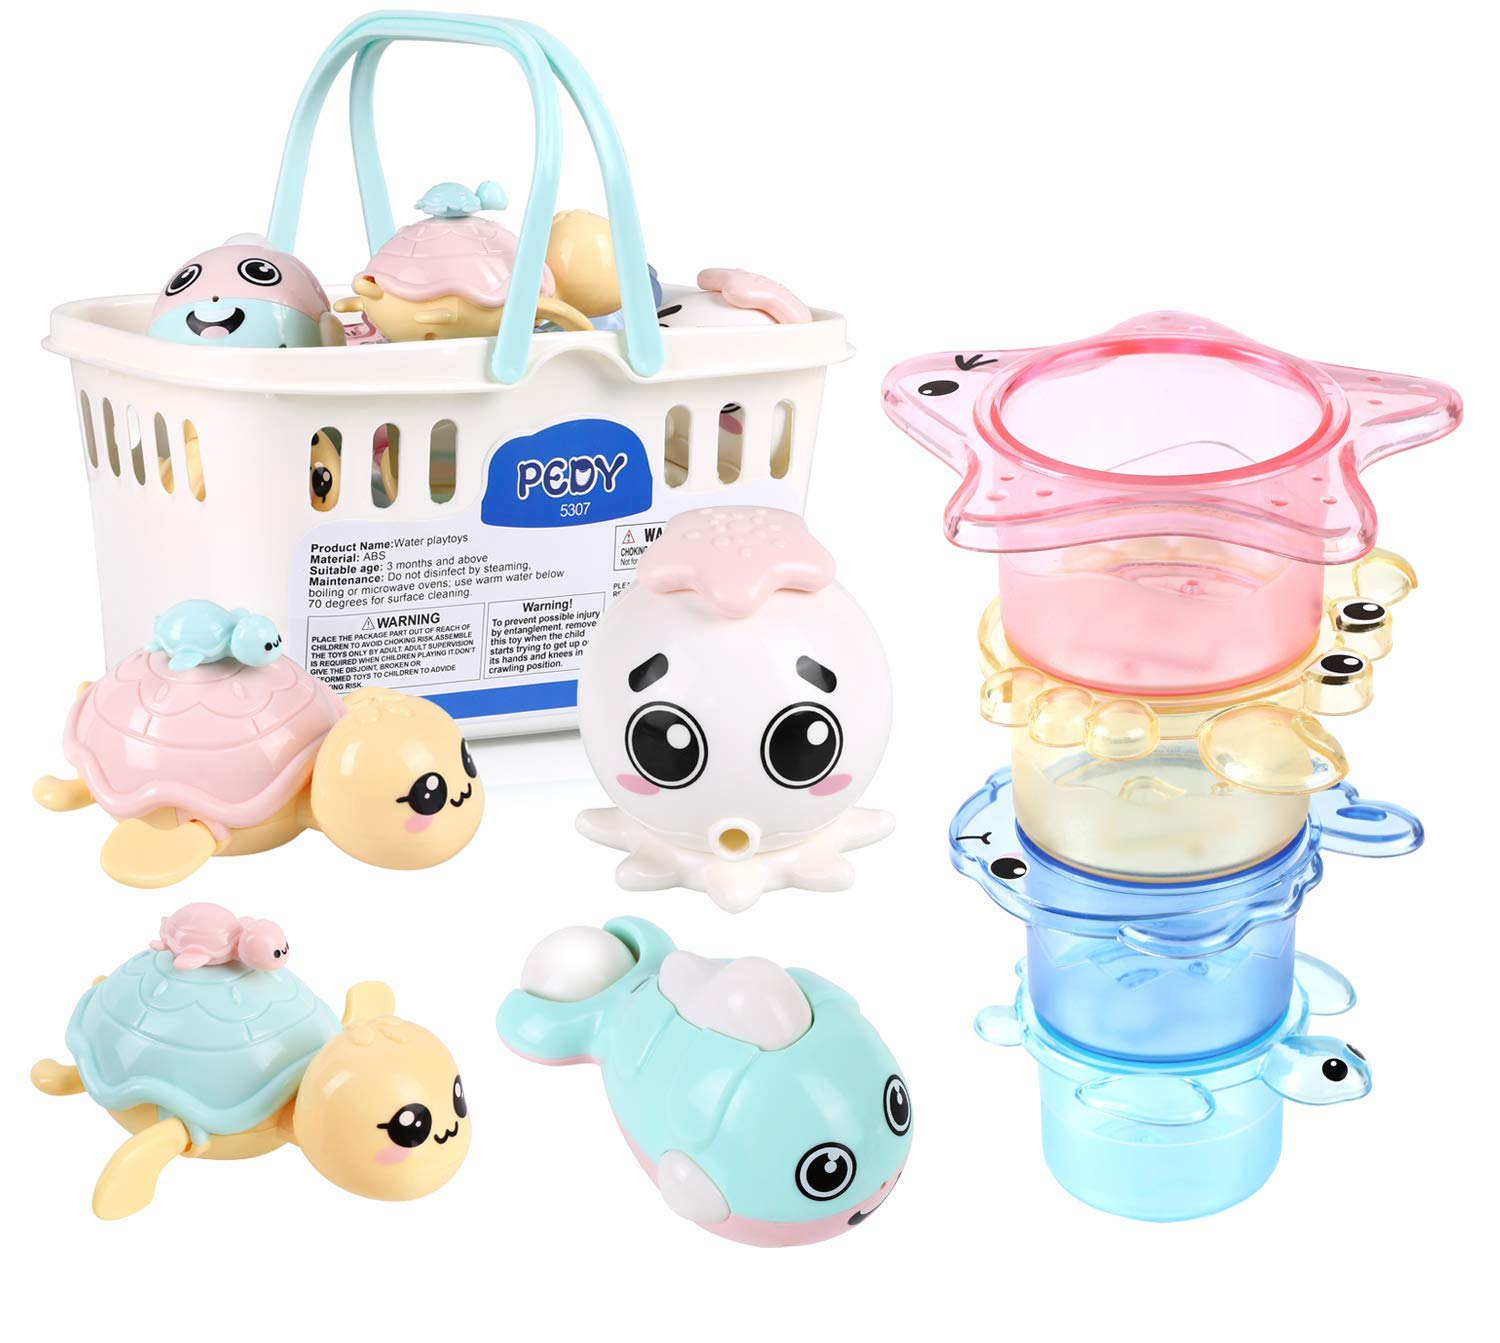 pedy 8PCS Baby Bath Toys Set, Fish Floating Toys BPA Free, Stackable Cups Spray Water Octopus Toy, Wind-Up Bath Turtle Bathtime Fun Toy for Toddler Infant Boys Girls (Pink)